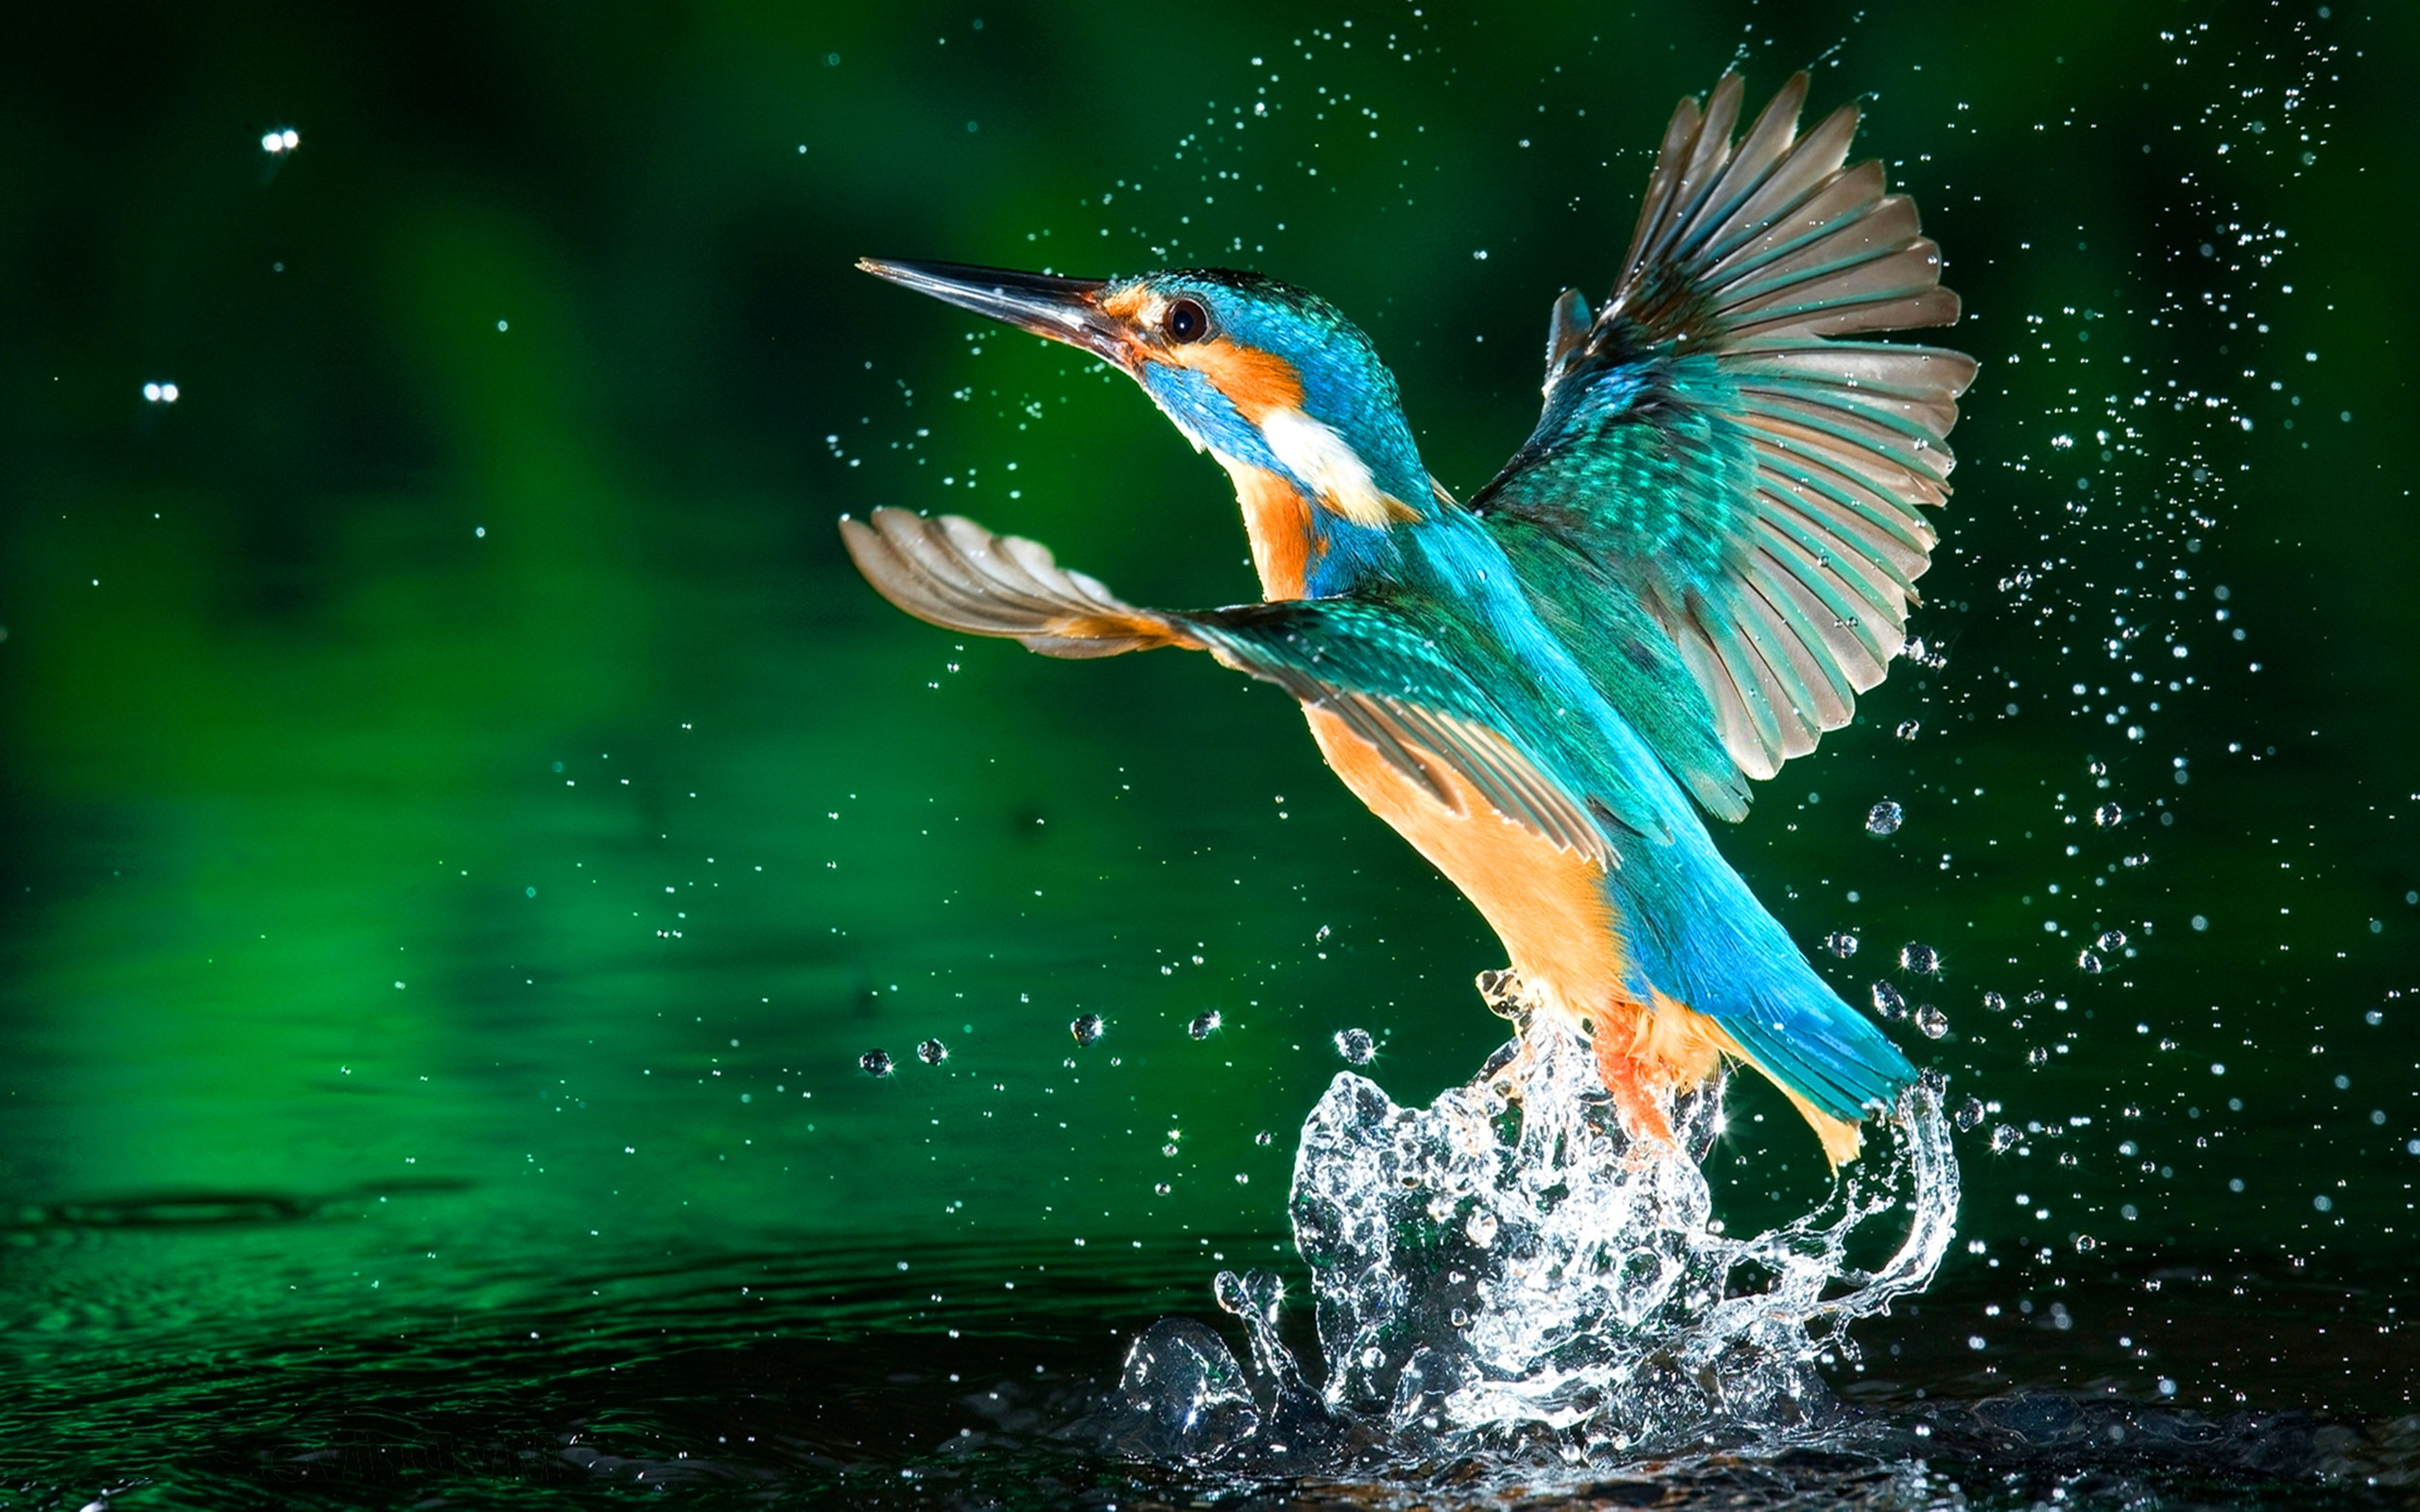 Kingfisher water